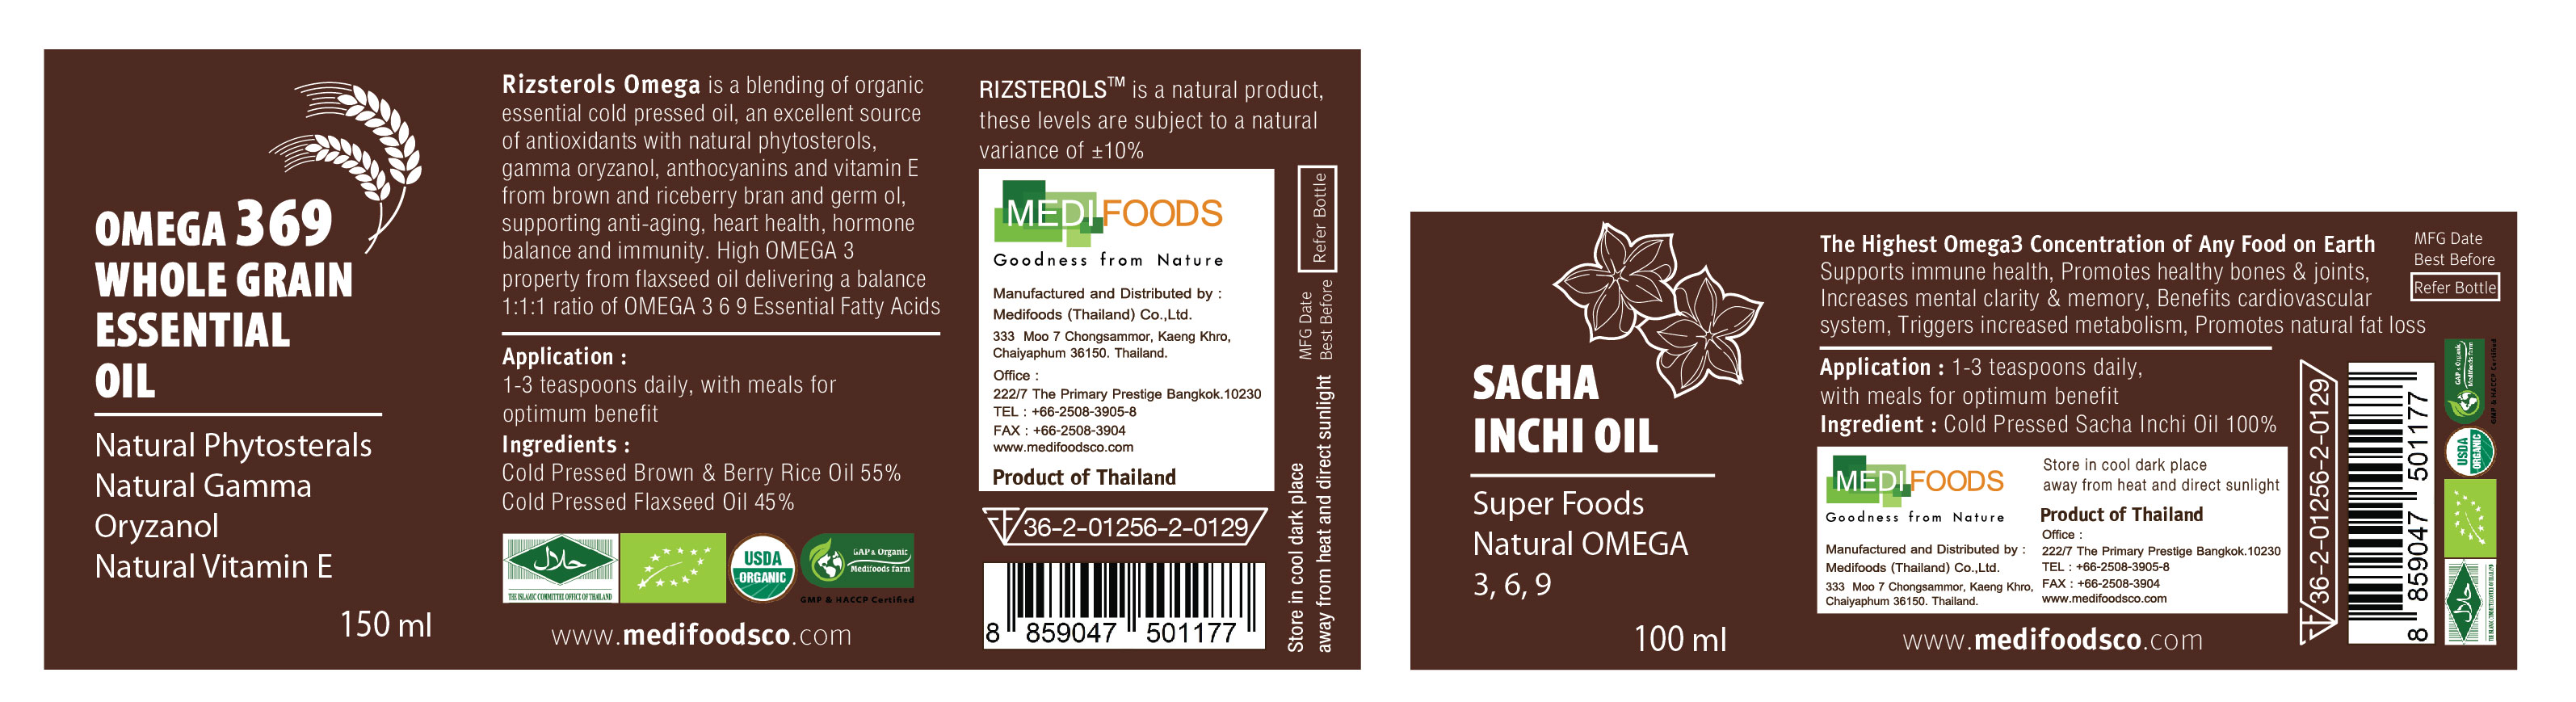 Sacha Inchi Oil Label-05